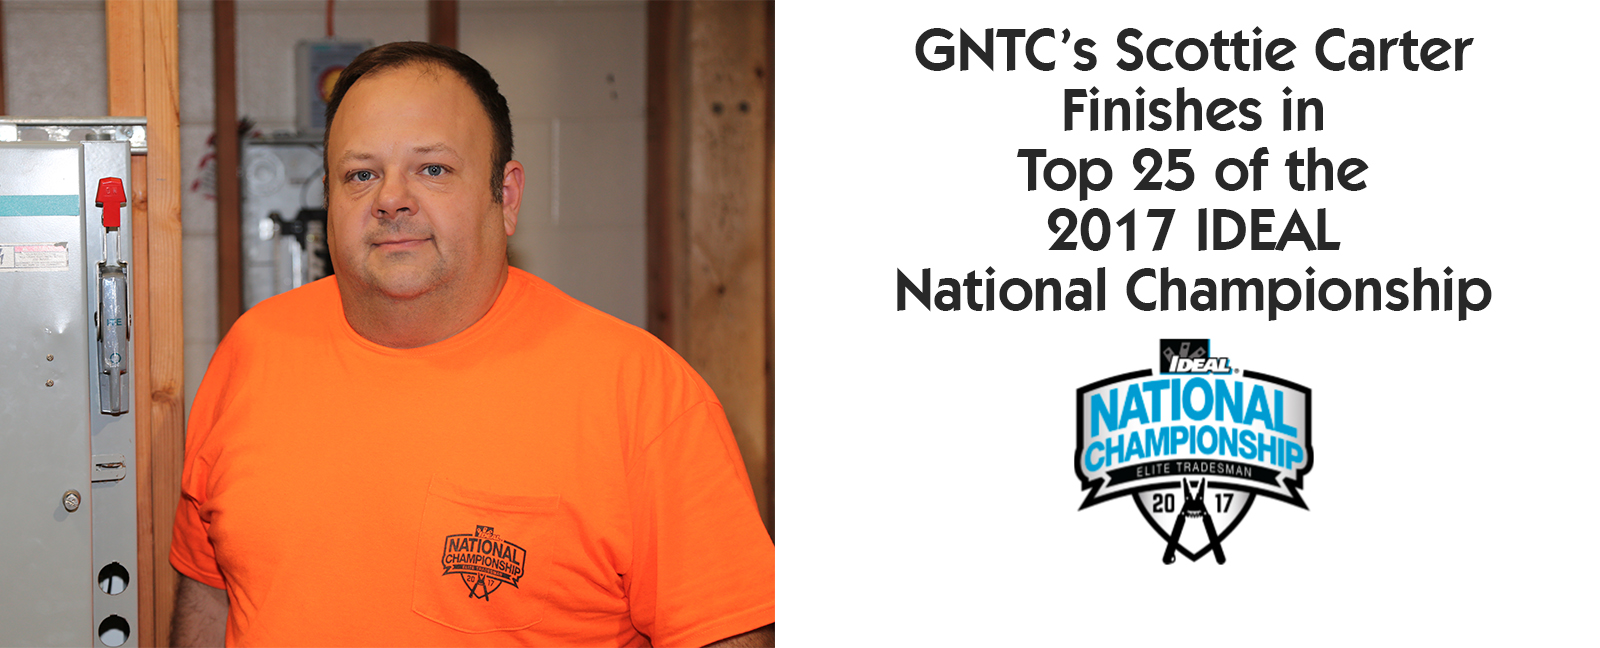 GNTC's Scottie Carter Finishes in the Top 25 of the 2017 IDEAL National Championship. Photo of Scottie Carter.